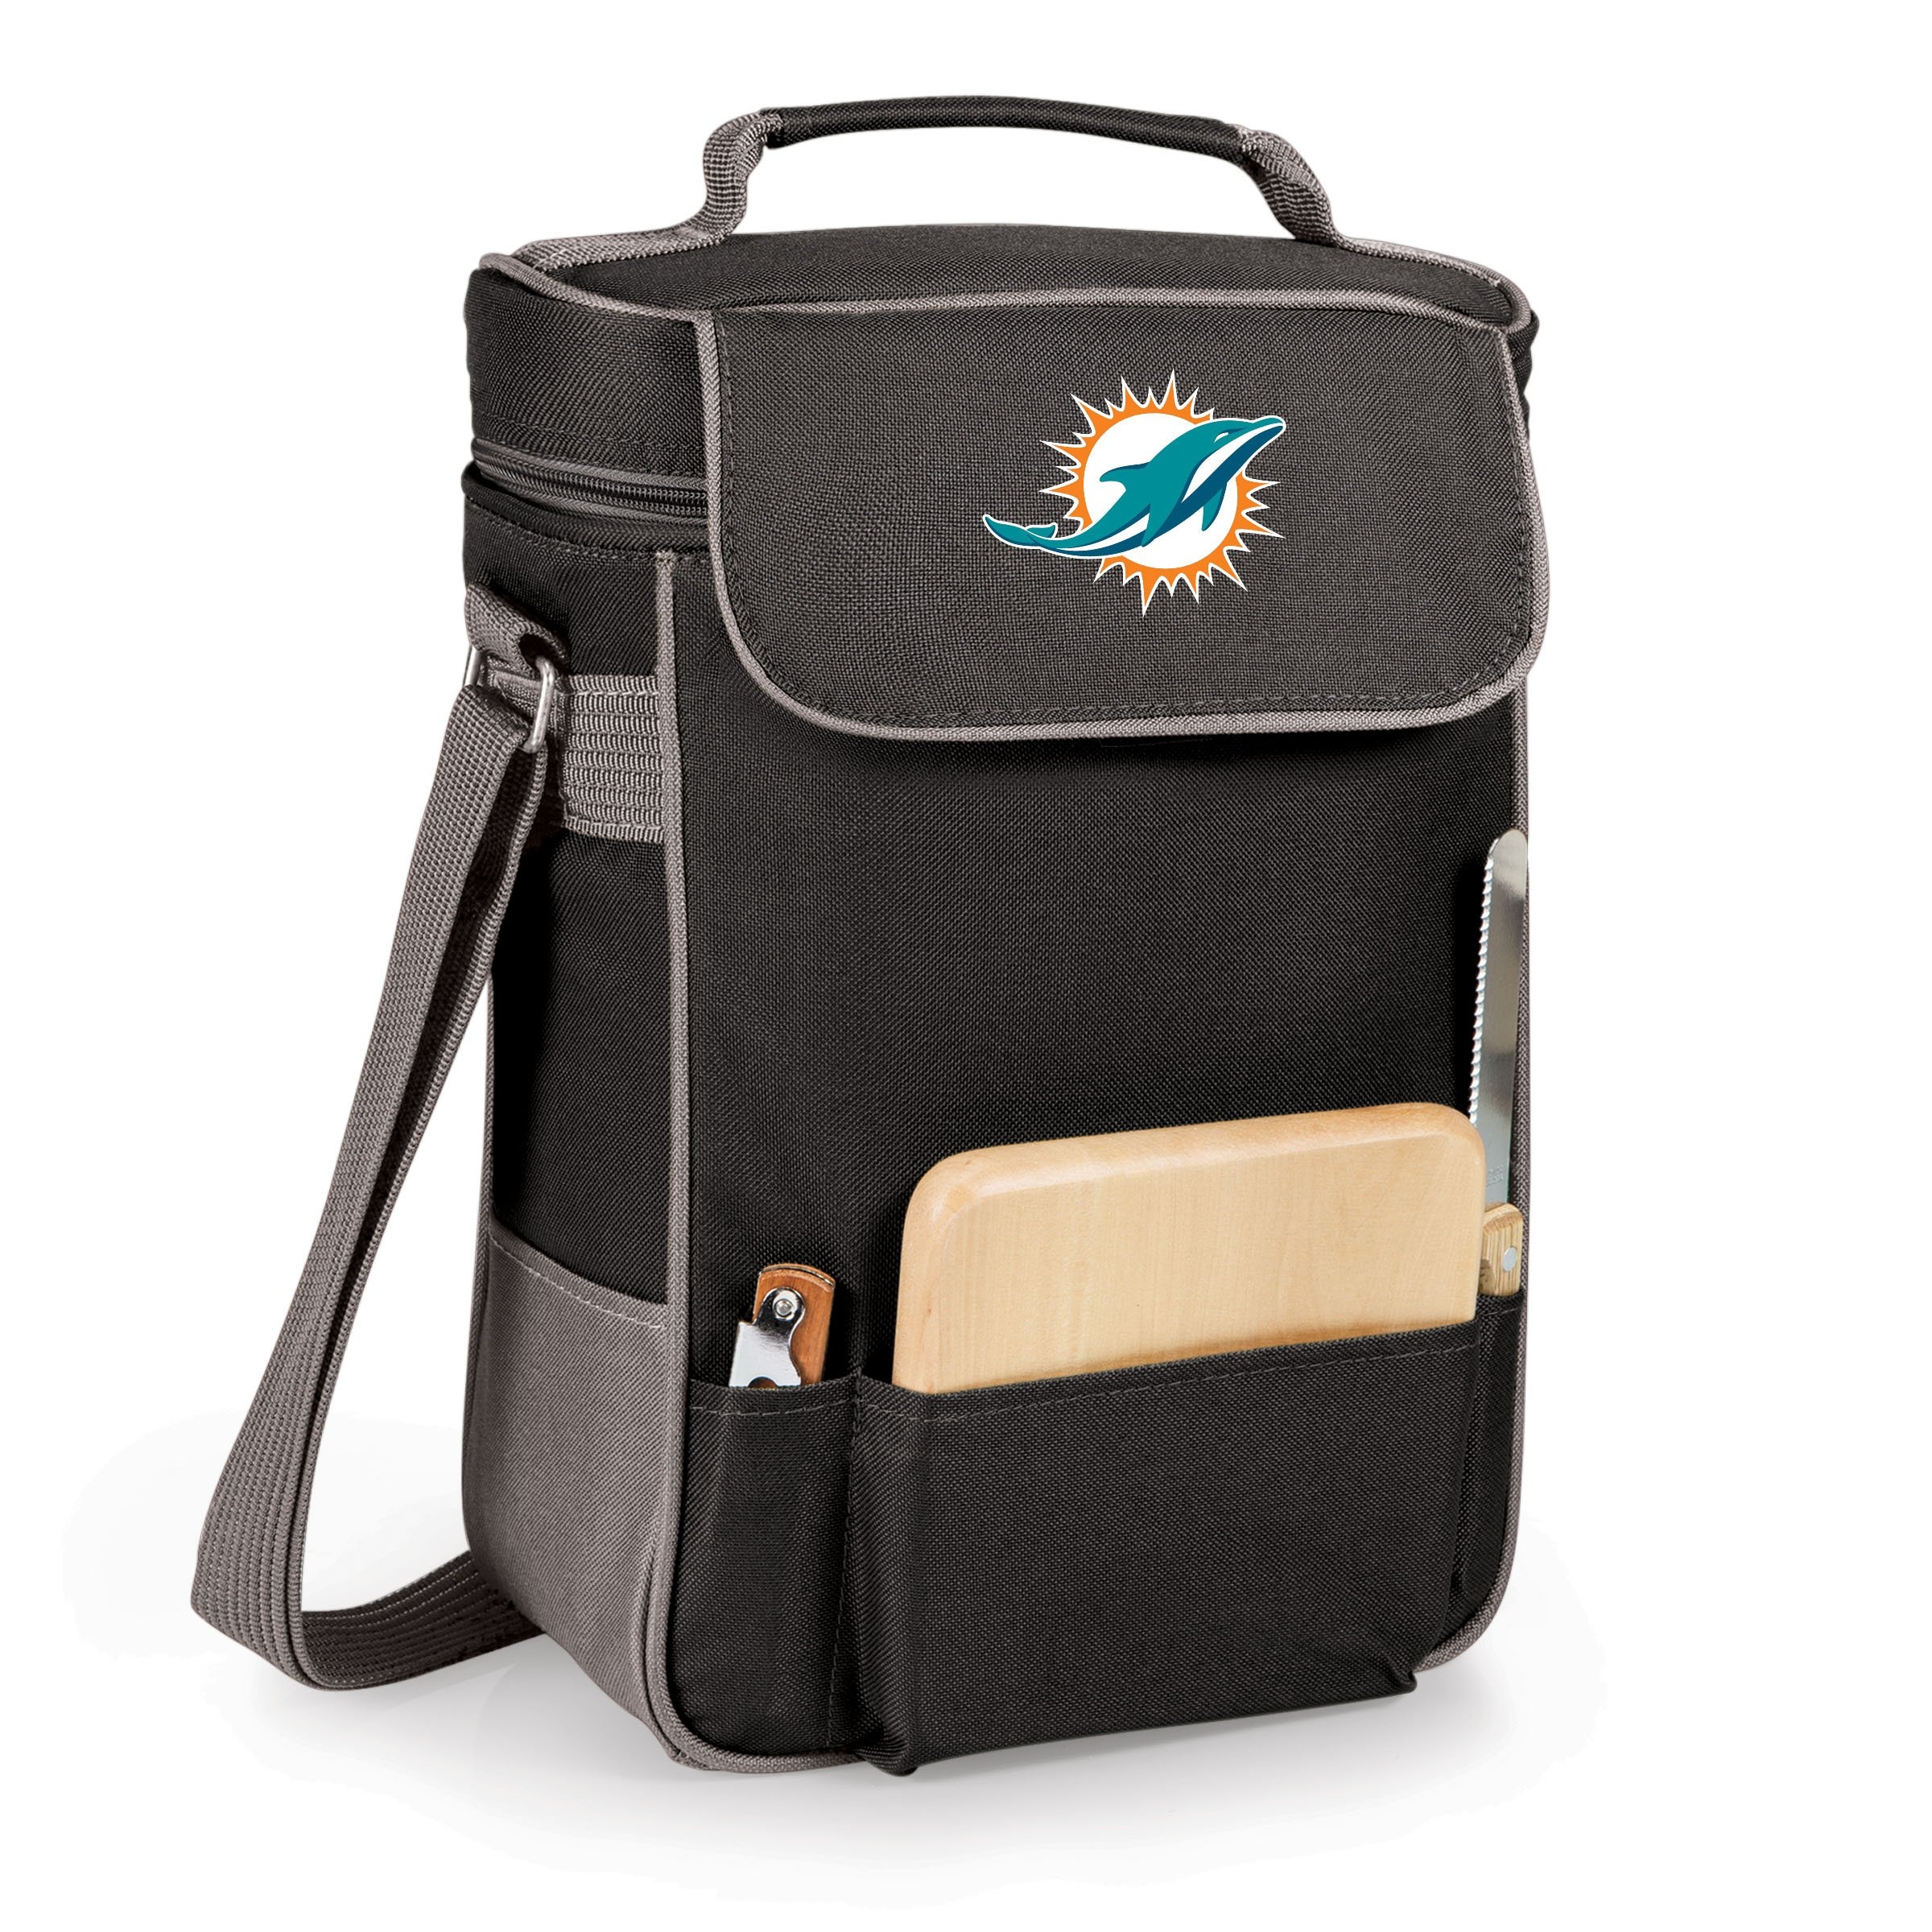 NFL Miami Dolphins Duet Insulated 2-Bottle Wine and Cheese Tote